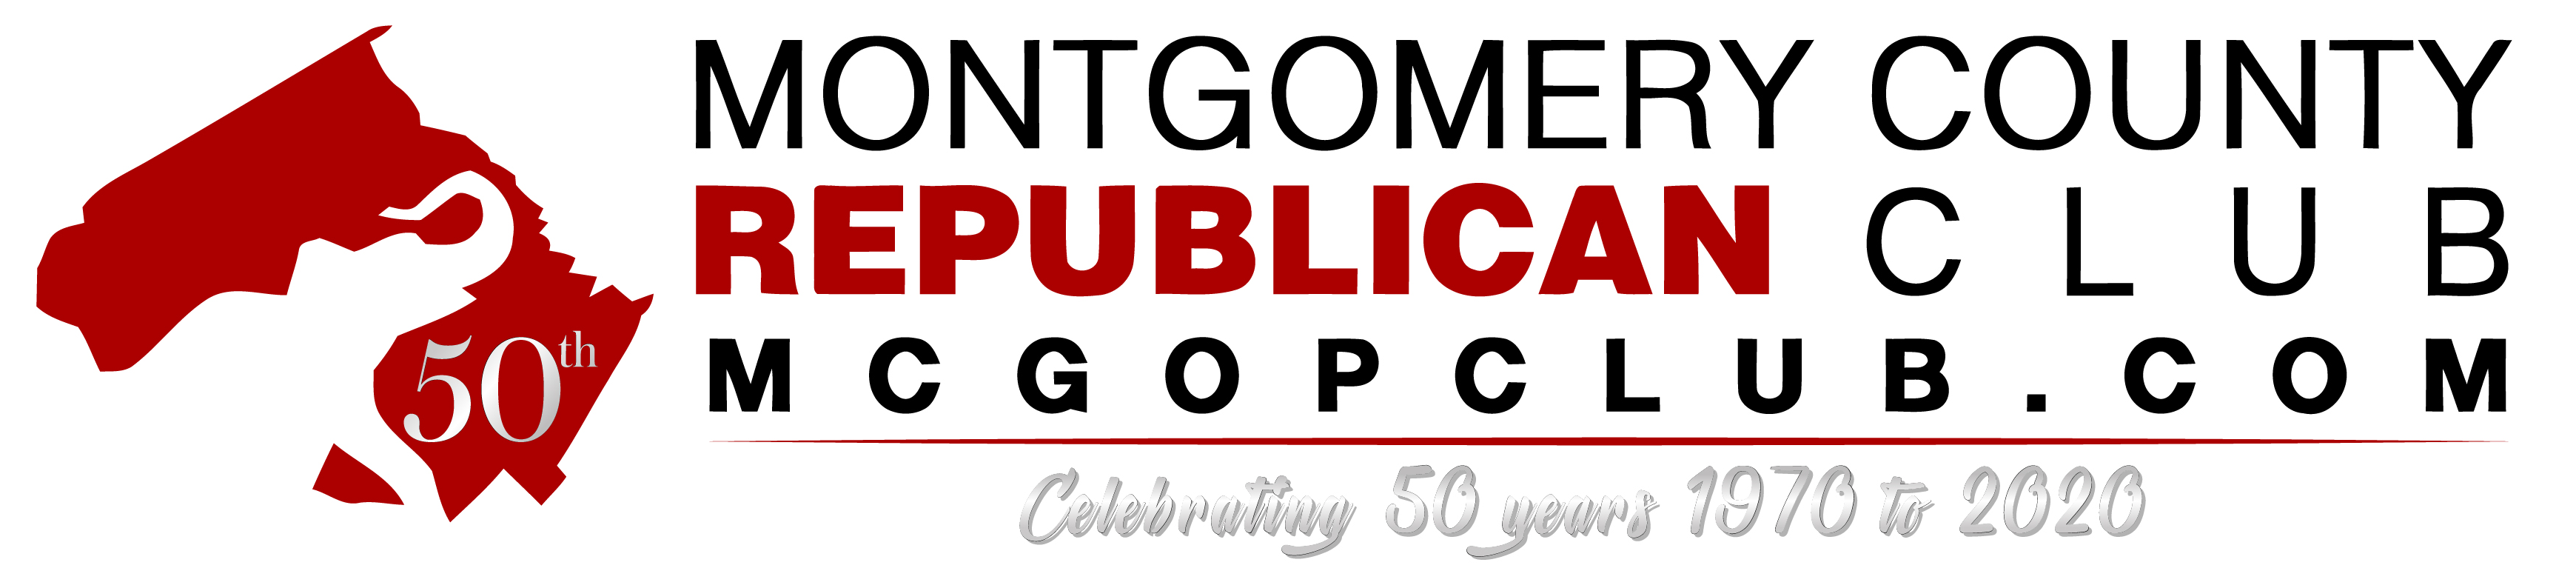 Montgomery County Republican Club at 50